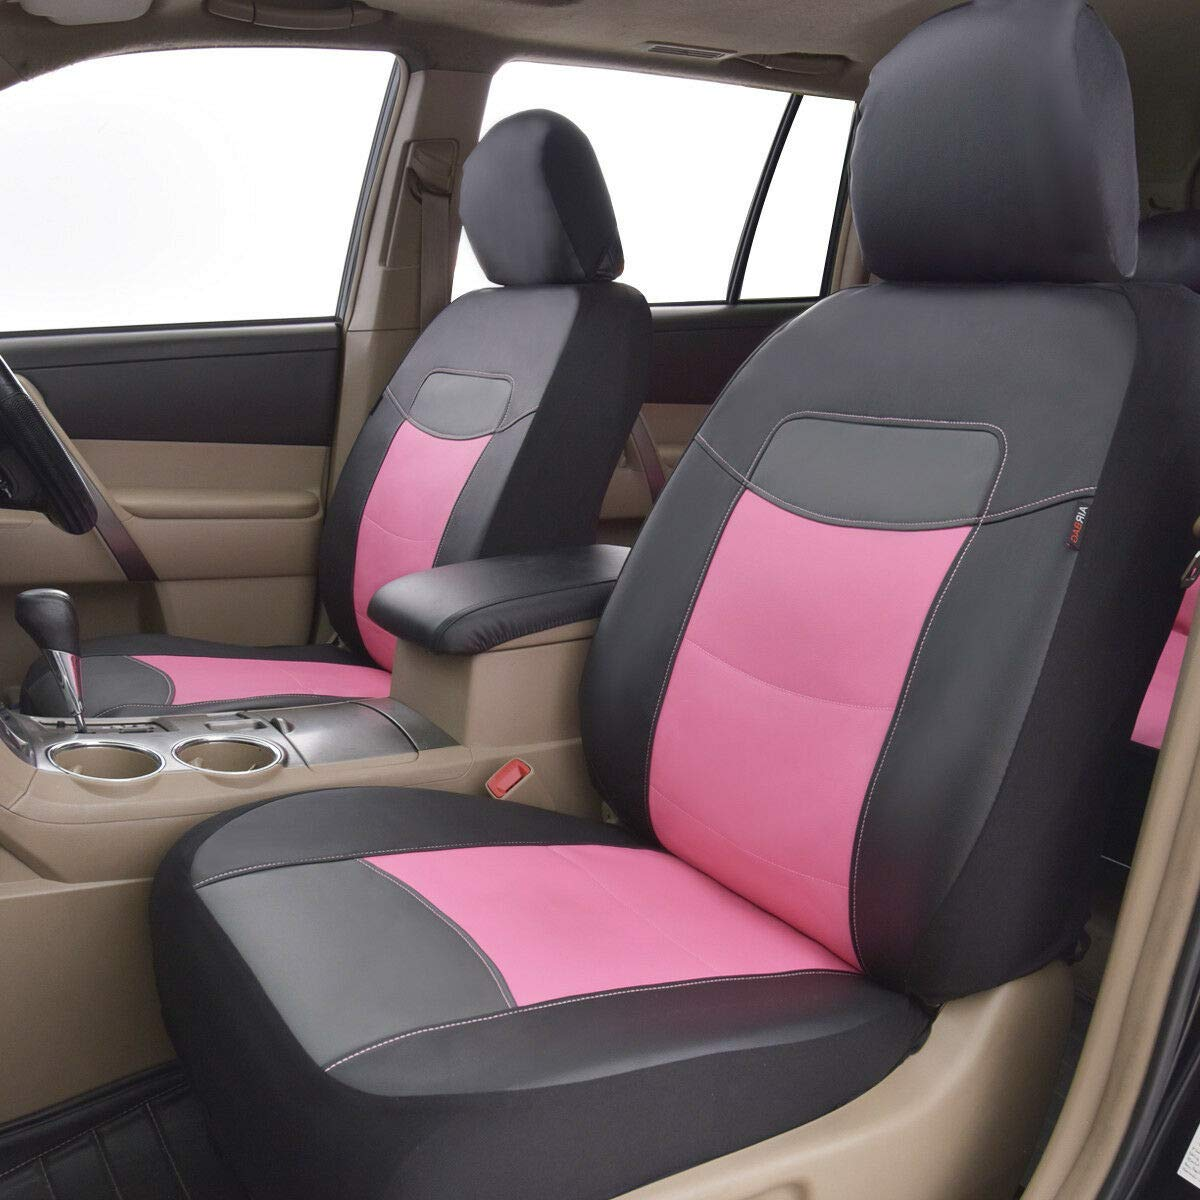 Flying Banner 11 PCS Car Seat Covers Full Set PVC Leather Pink and Black 004-Style Waterproof Composite Sponge Inside Airbag Compatible Universal fit Most Car,Truck,SUV and Van